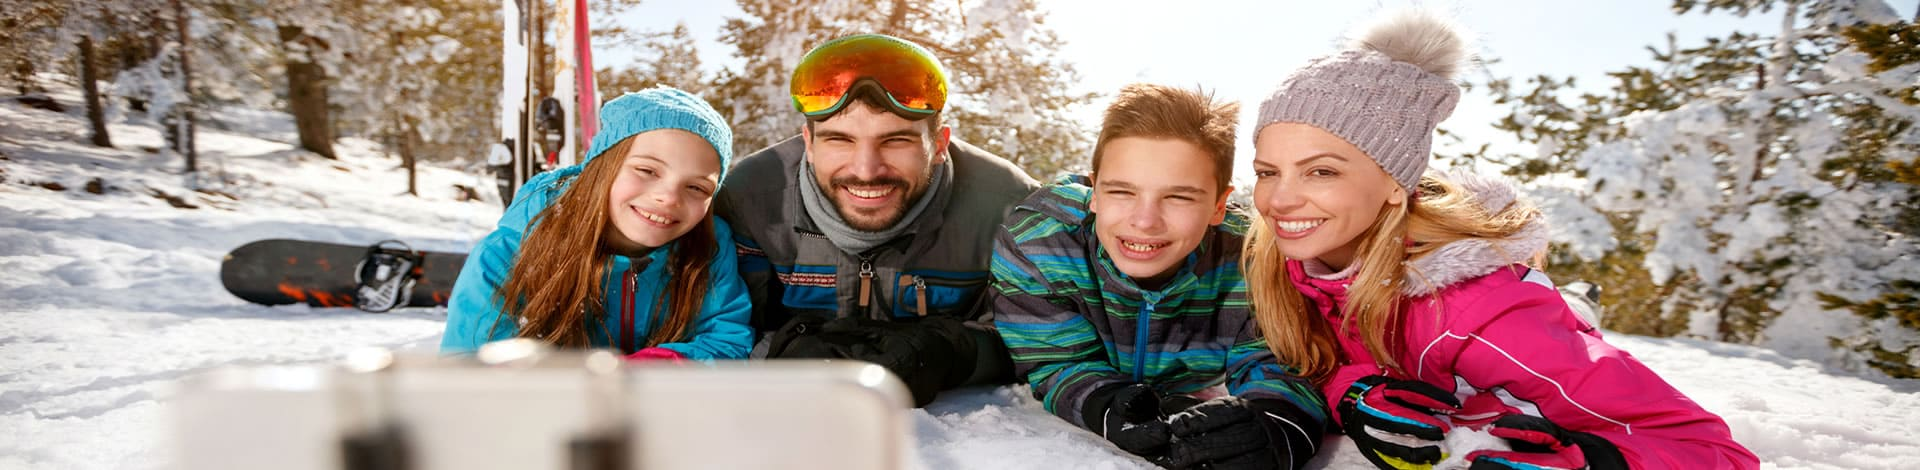 Packing list for ski holidays with children